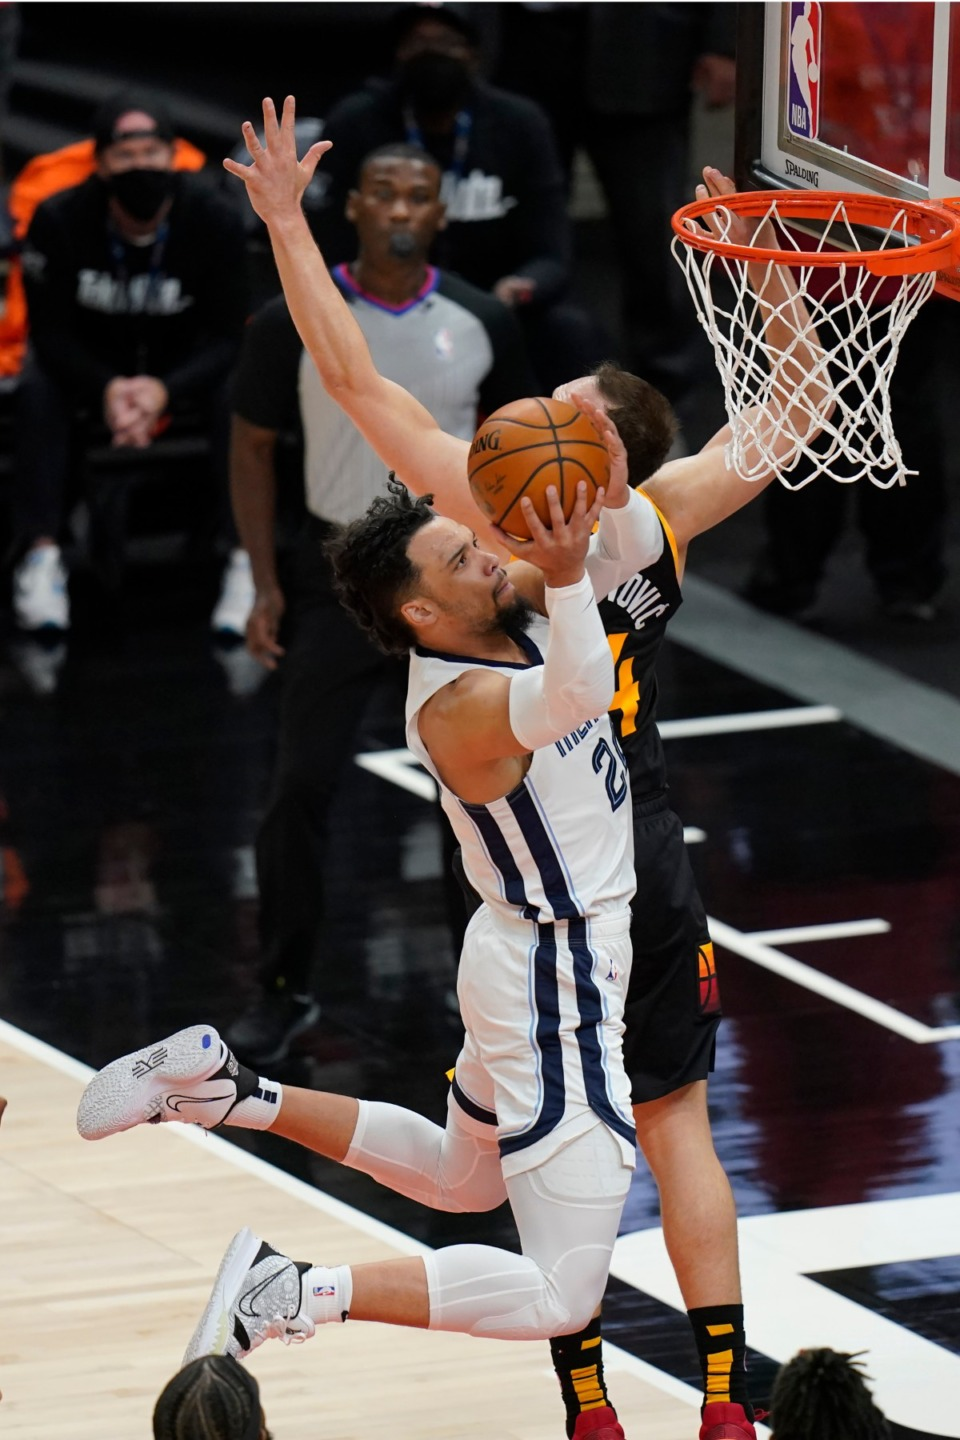 <strong>Grizzlies forward Dillon Brooks (24) goes to the basket as Utah Jazz forward Bojan Bogdanovic, rear, defends during the first half of Game 2 of their NBA basketball first-round playoff series Wednesday, May 26, 2021, in Salt Lake City.</strong> (Rick Bowmer/AP file)